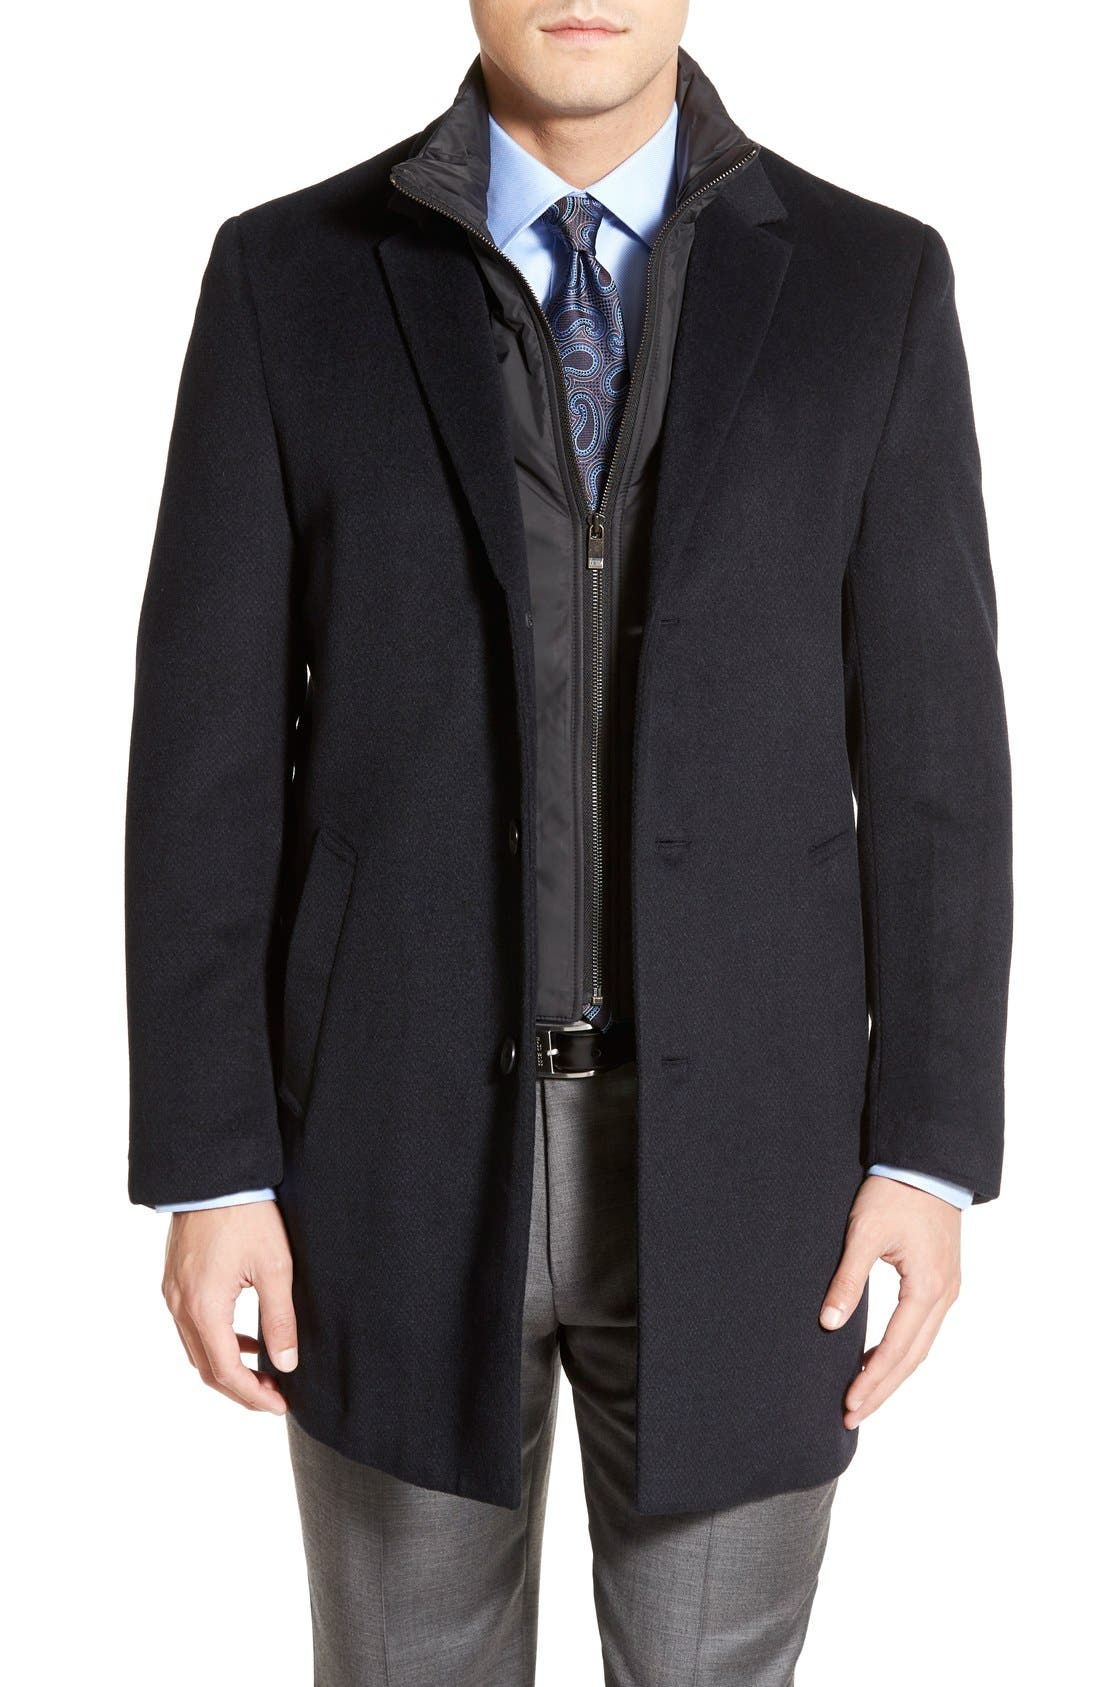 Main Image - Hart Schaffner Marx Kingman Modern Fit Wool Blend Coat with Removable Zipper Bib